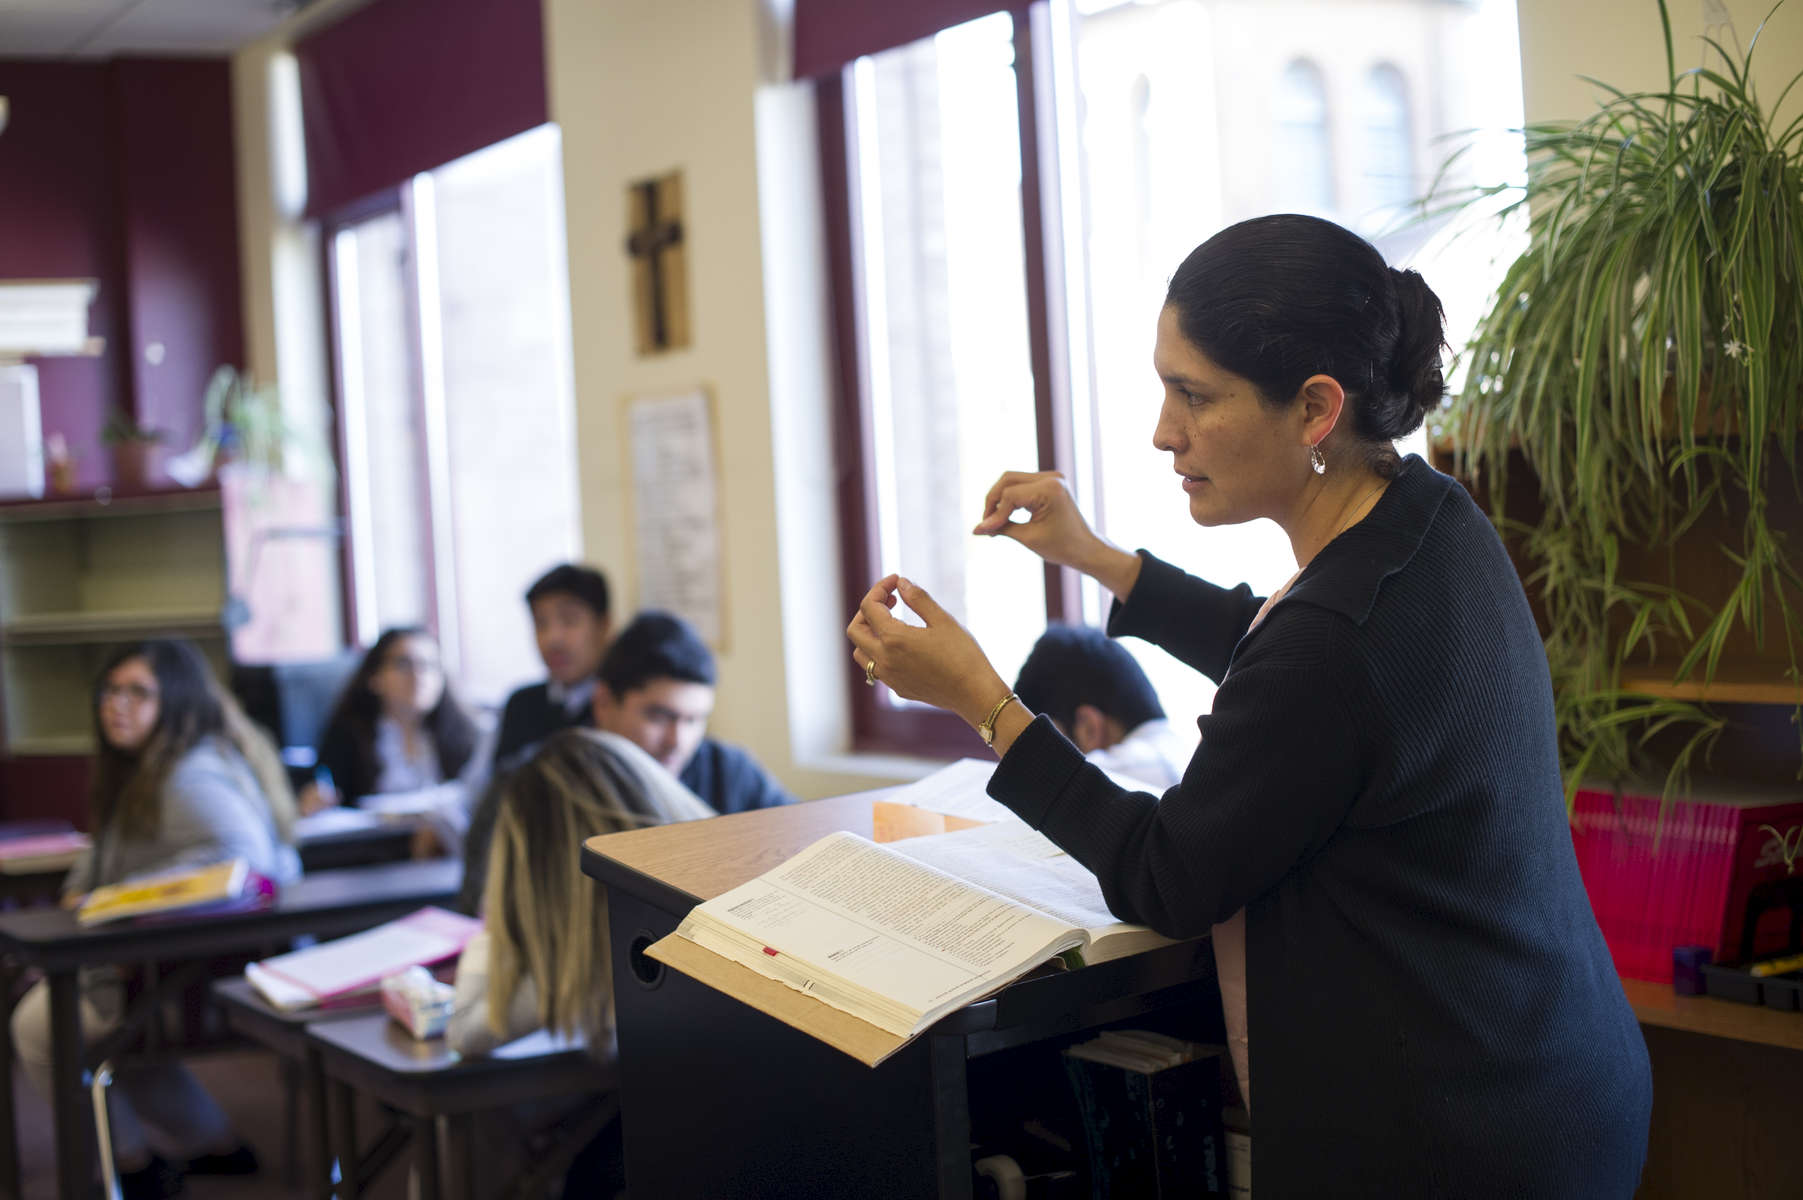 Part-time teacher Rosa Walke comments on a presentation made by a group of students during an AP Spanish Class at Cristo Rey Jesuit High School, October 19, 2016.